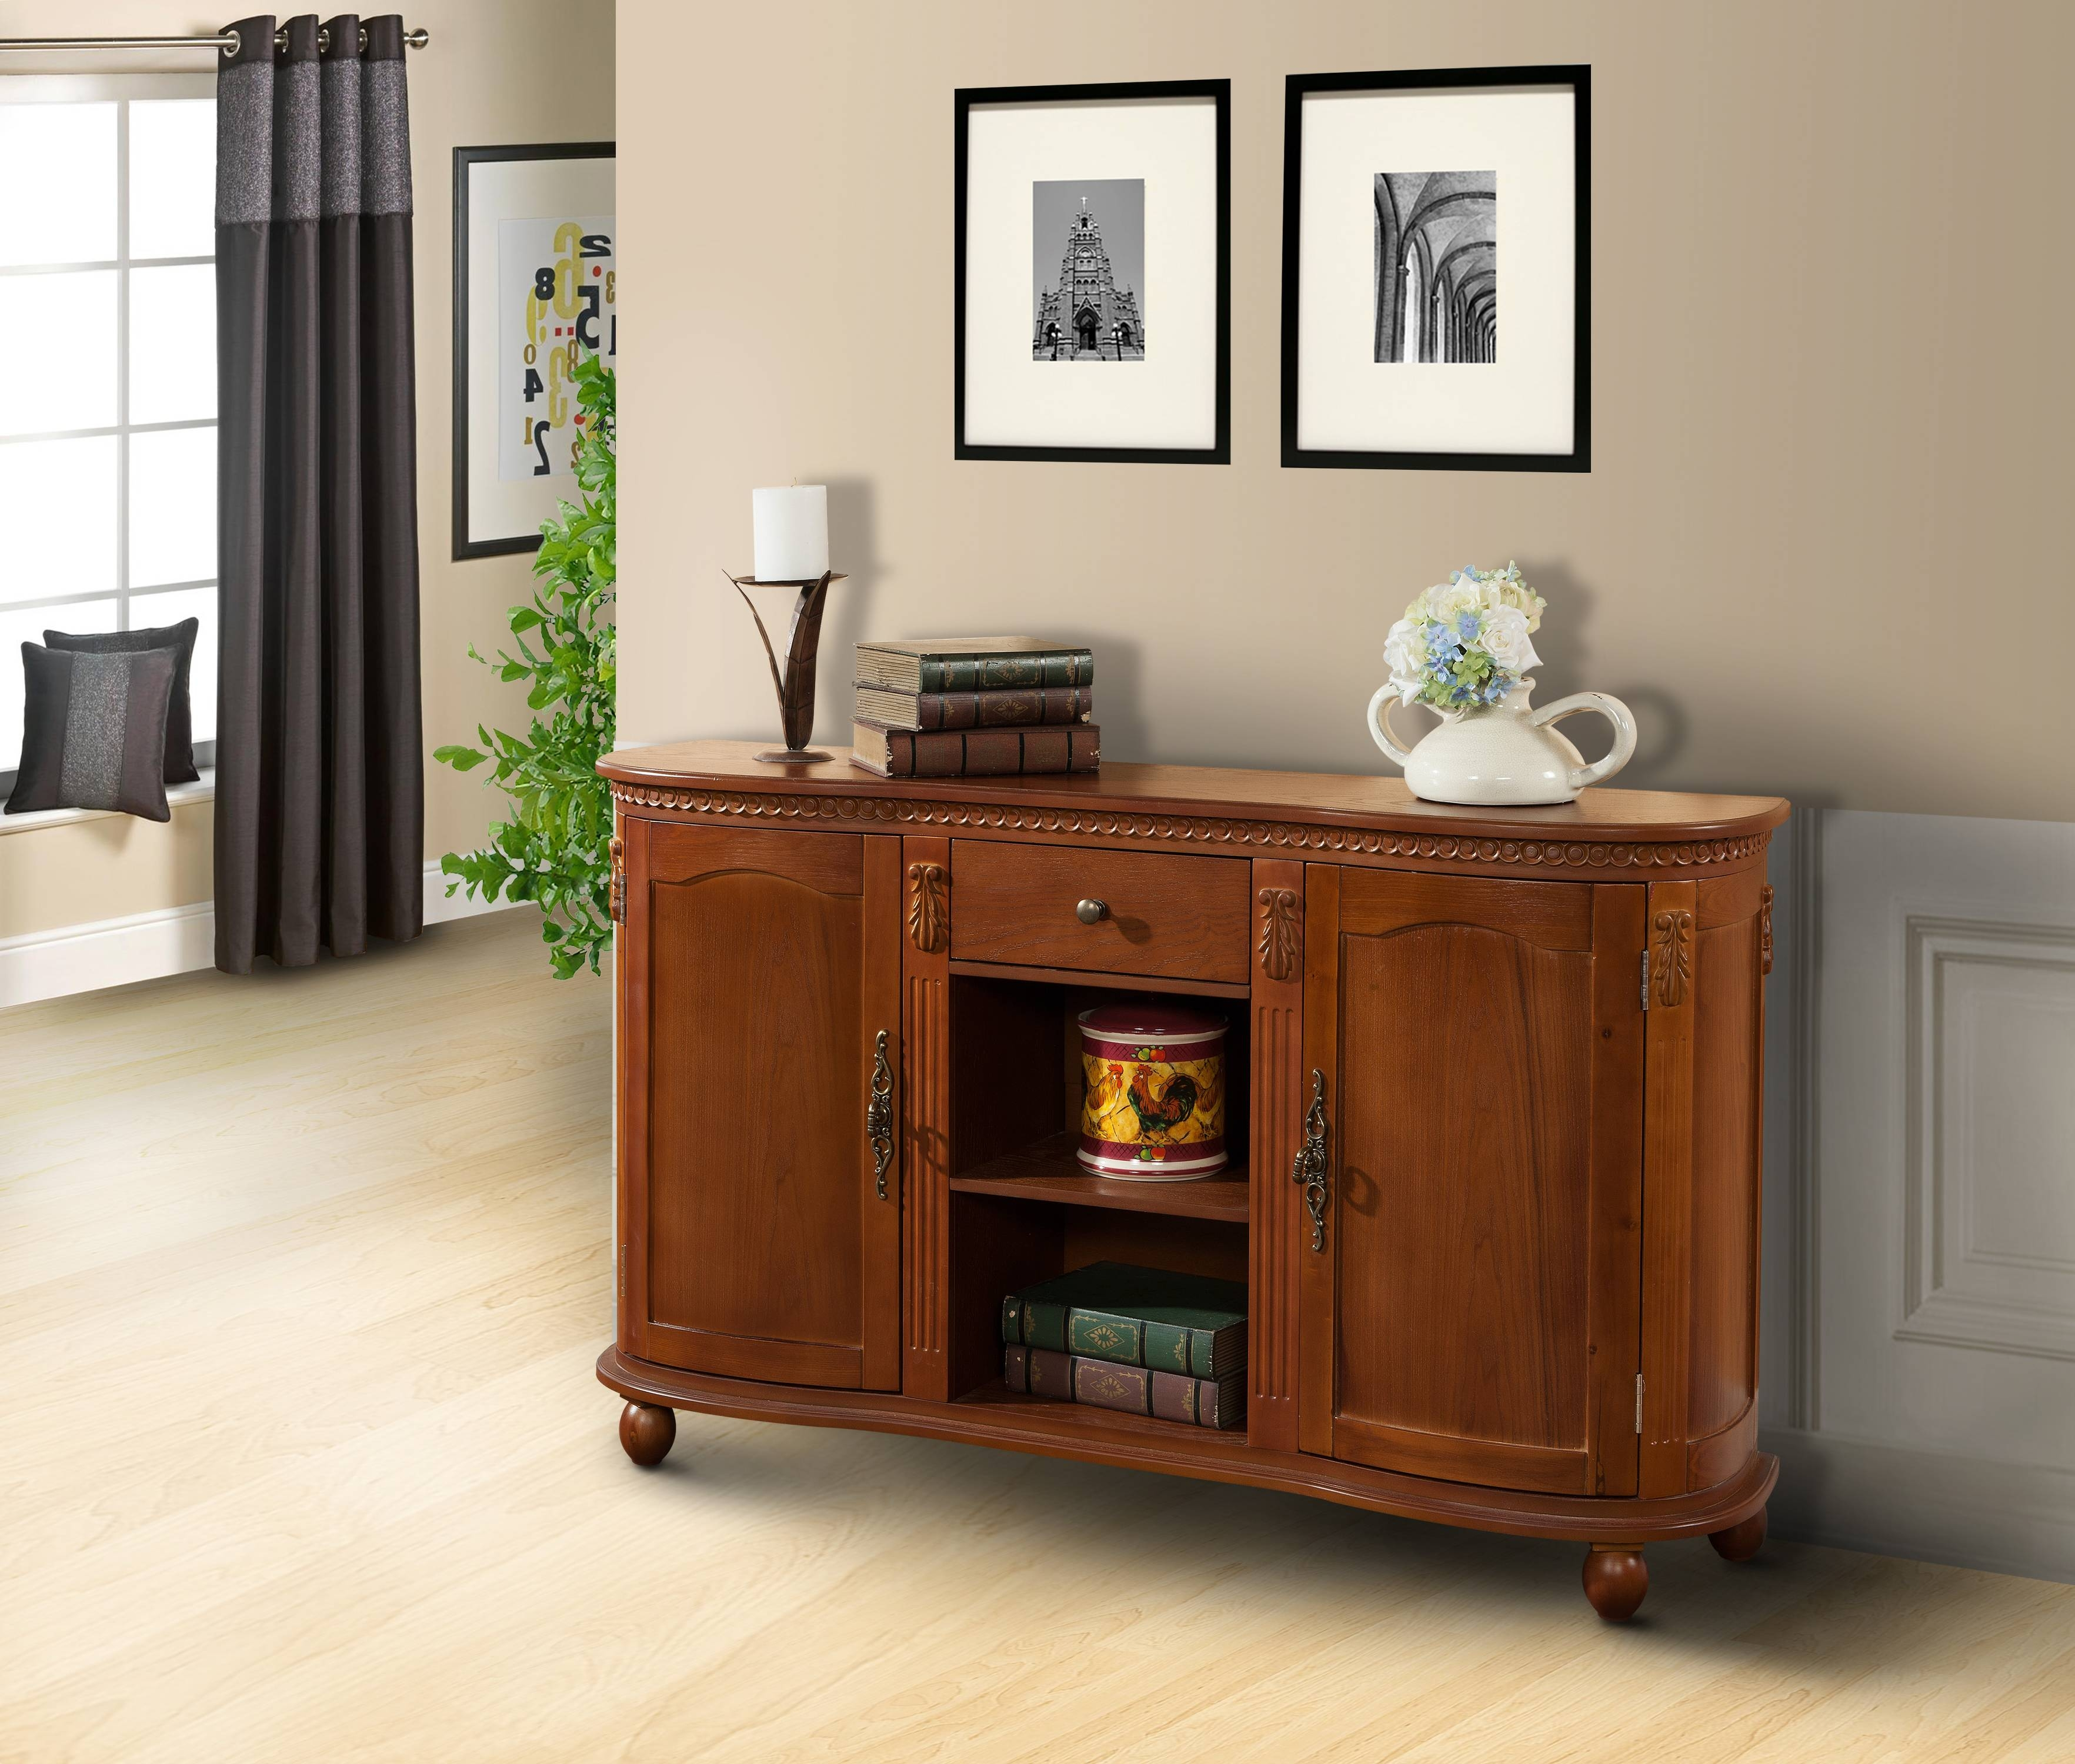 Beautiful Sideboard Buffet Table – Bjdgjy Regarding Sydney Sideboards And Buffets (View 12 of 15)